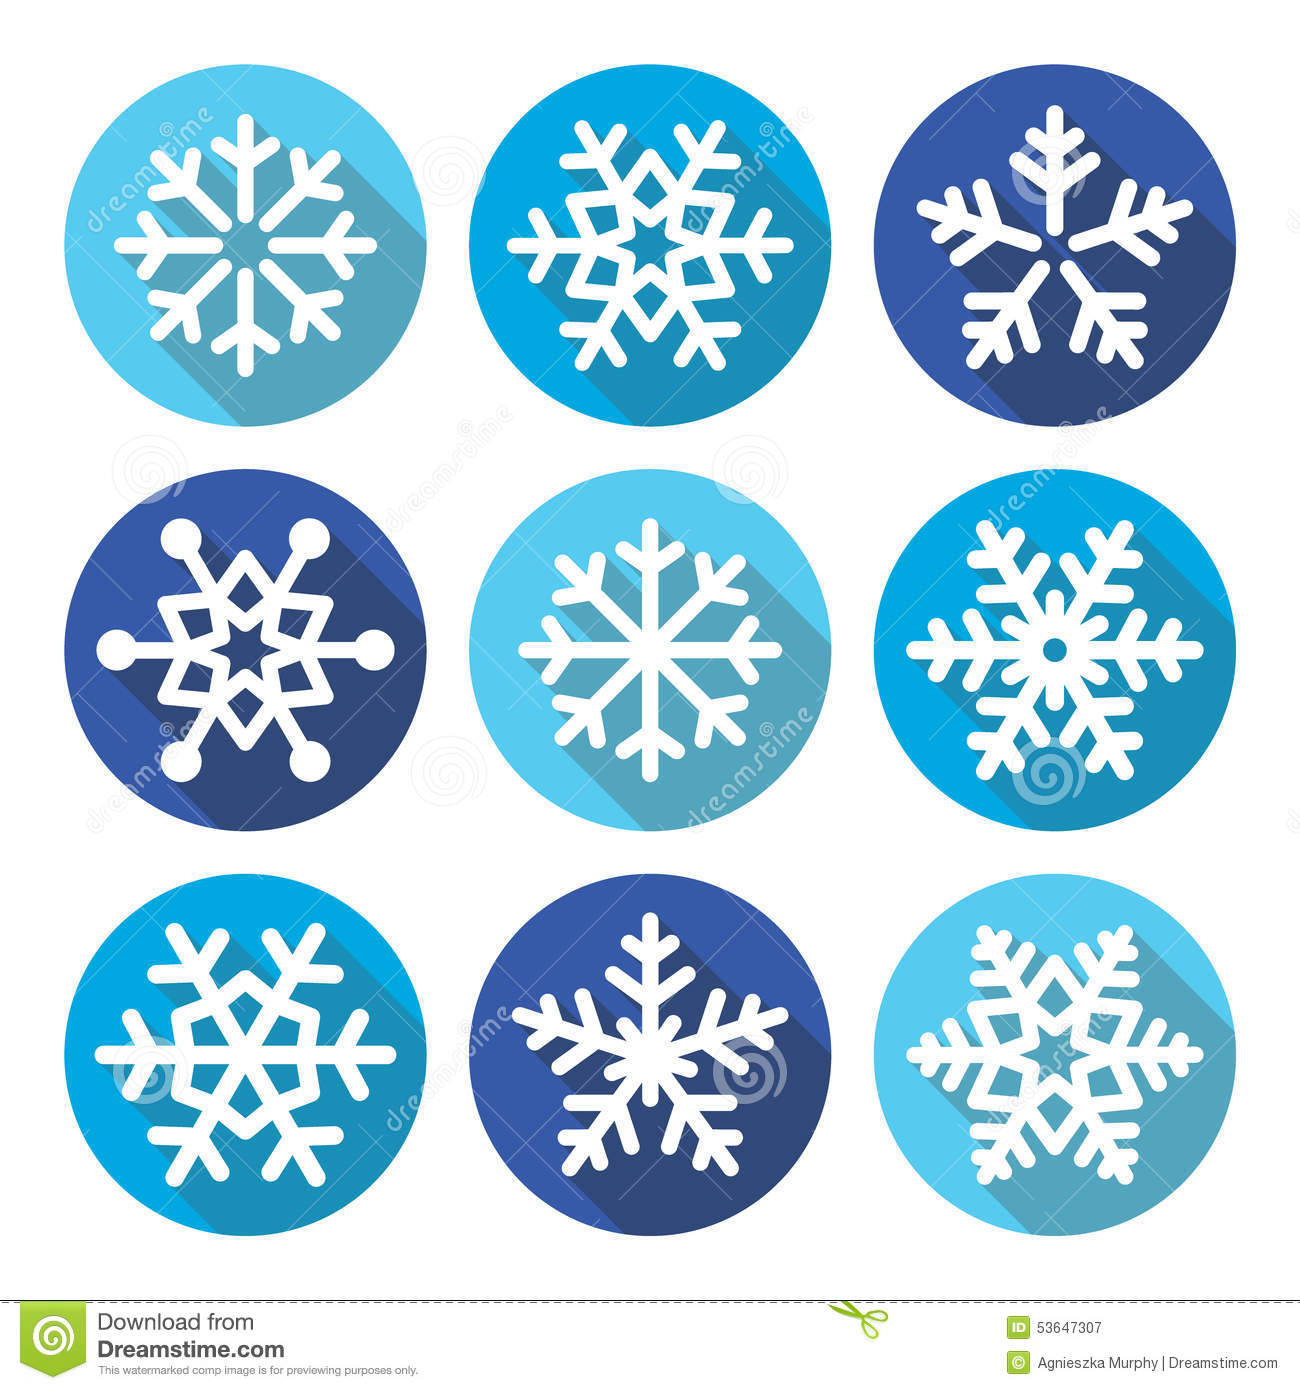 snowflakes  christmas flat design round icons stock illustration